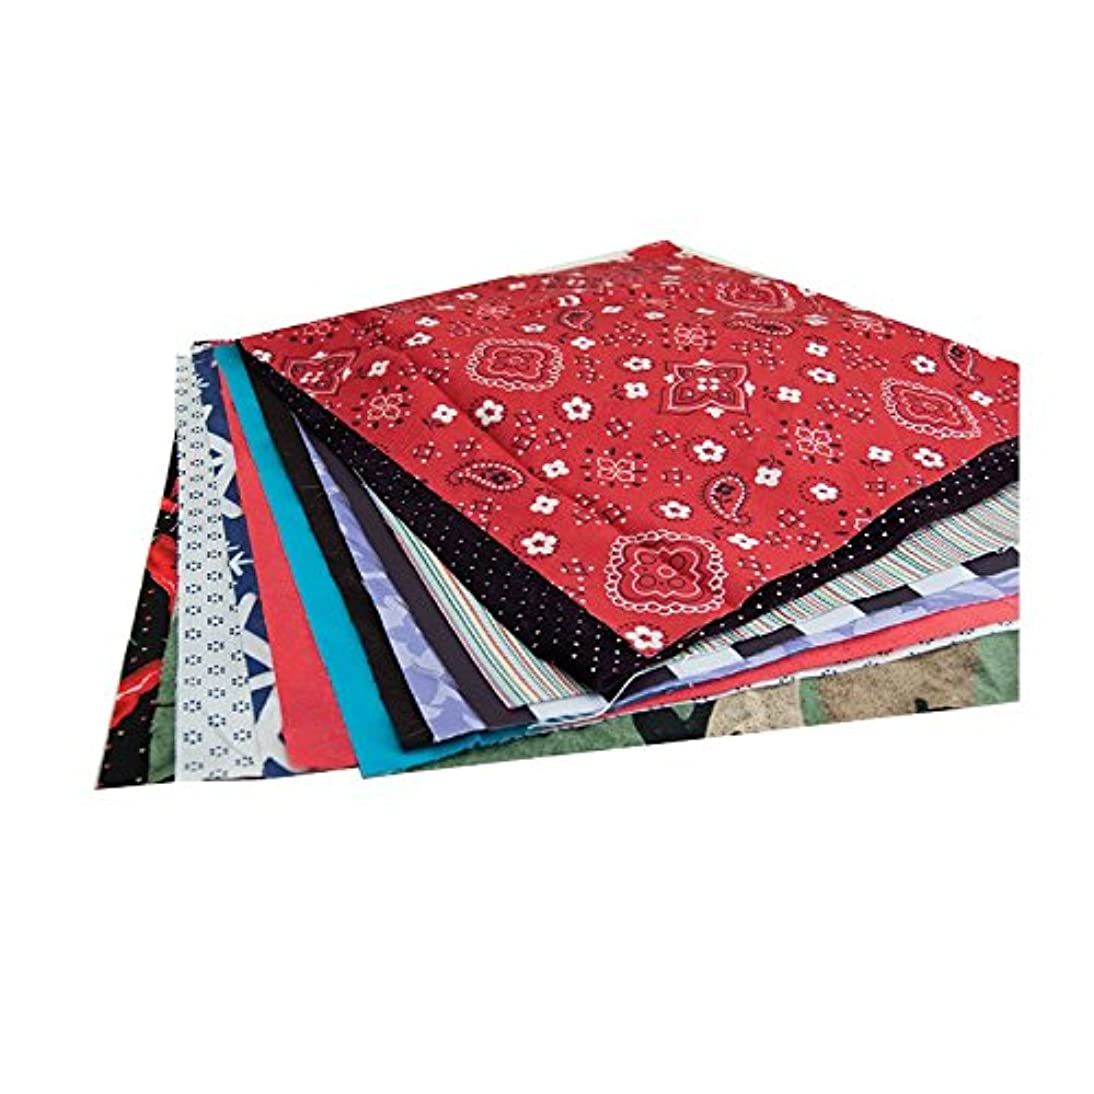 """Hygloss Products Fabric Squares for DIY Sewing, Decorating, Puppet Making and Quilting,18"""" x 36"""" Inches, Assorted Color & Style Pattern, 6 Pieces"""